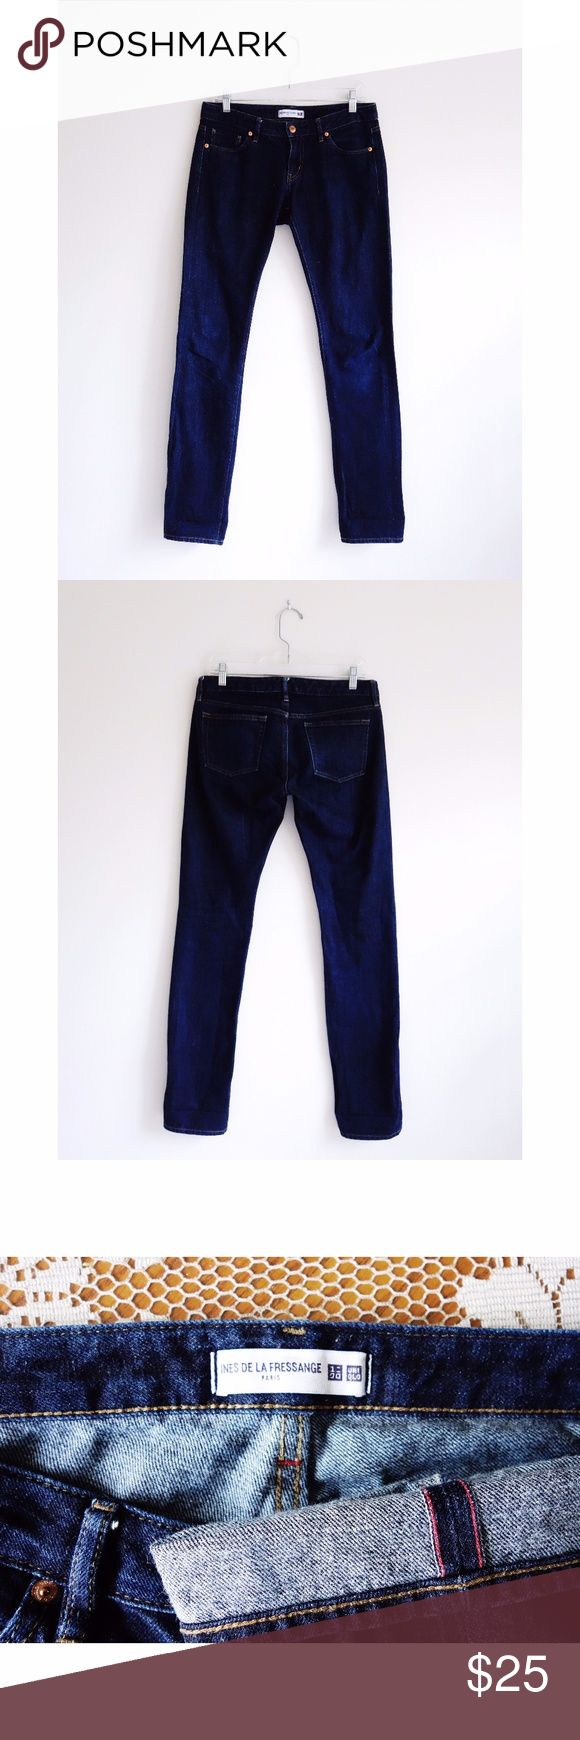 """Ines de la Fressange Uniqlo Selvedge Slim Jeans 26 Ines de la Fressange x Uniqlo Dark Wash Selvedge Slim Skinny Jeans size 26 x 33, gently used--no rips, stains, or holes, low rise, five pocket styling, slim straight cigarette leg, red selvedge outseam, 100% cotton, 16-16.5"""" across waist, 8"""" front rise, 33.5"""" inseam, 13"""" leg opening Uniqlo Jeans Straight Leg"""